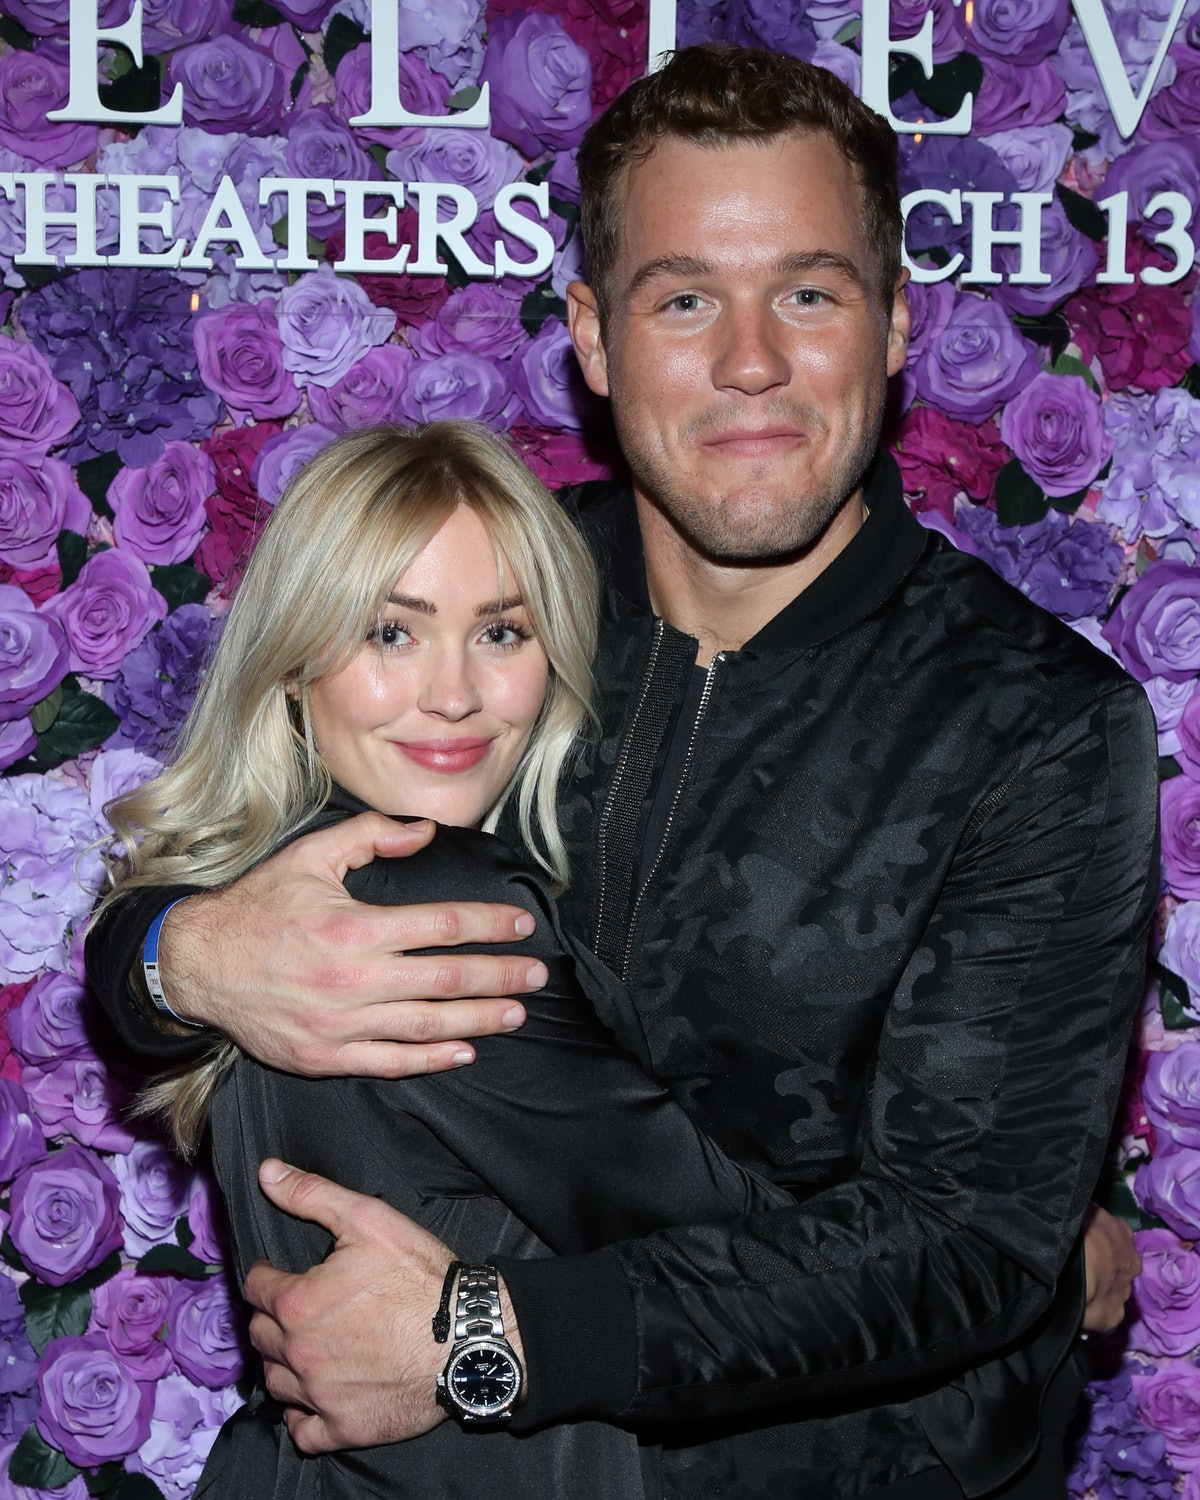 WEST HOLLYWOOD, CALIFORNIA - MARCH 11: Reality TV Personalities Cassie Randolph (L) and Colton Under...